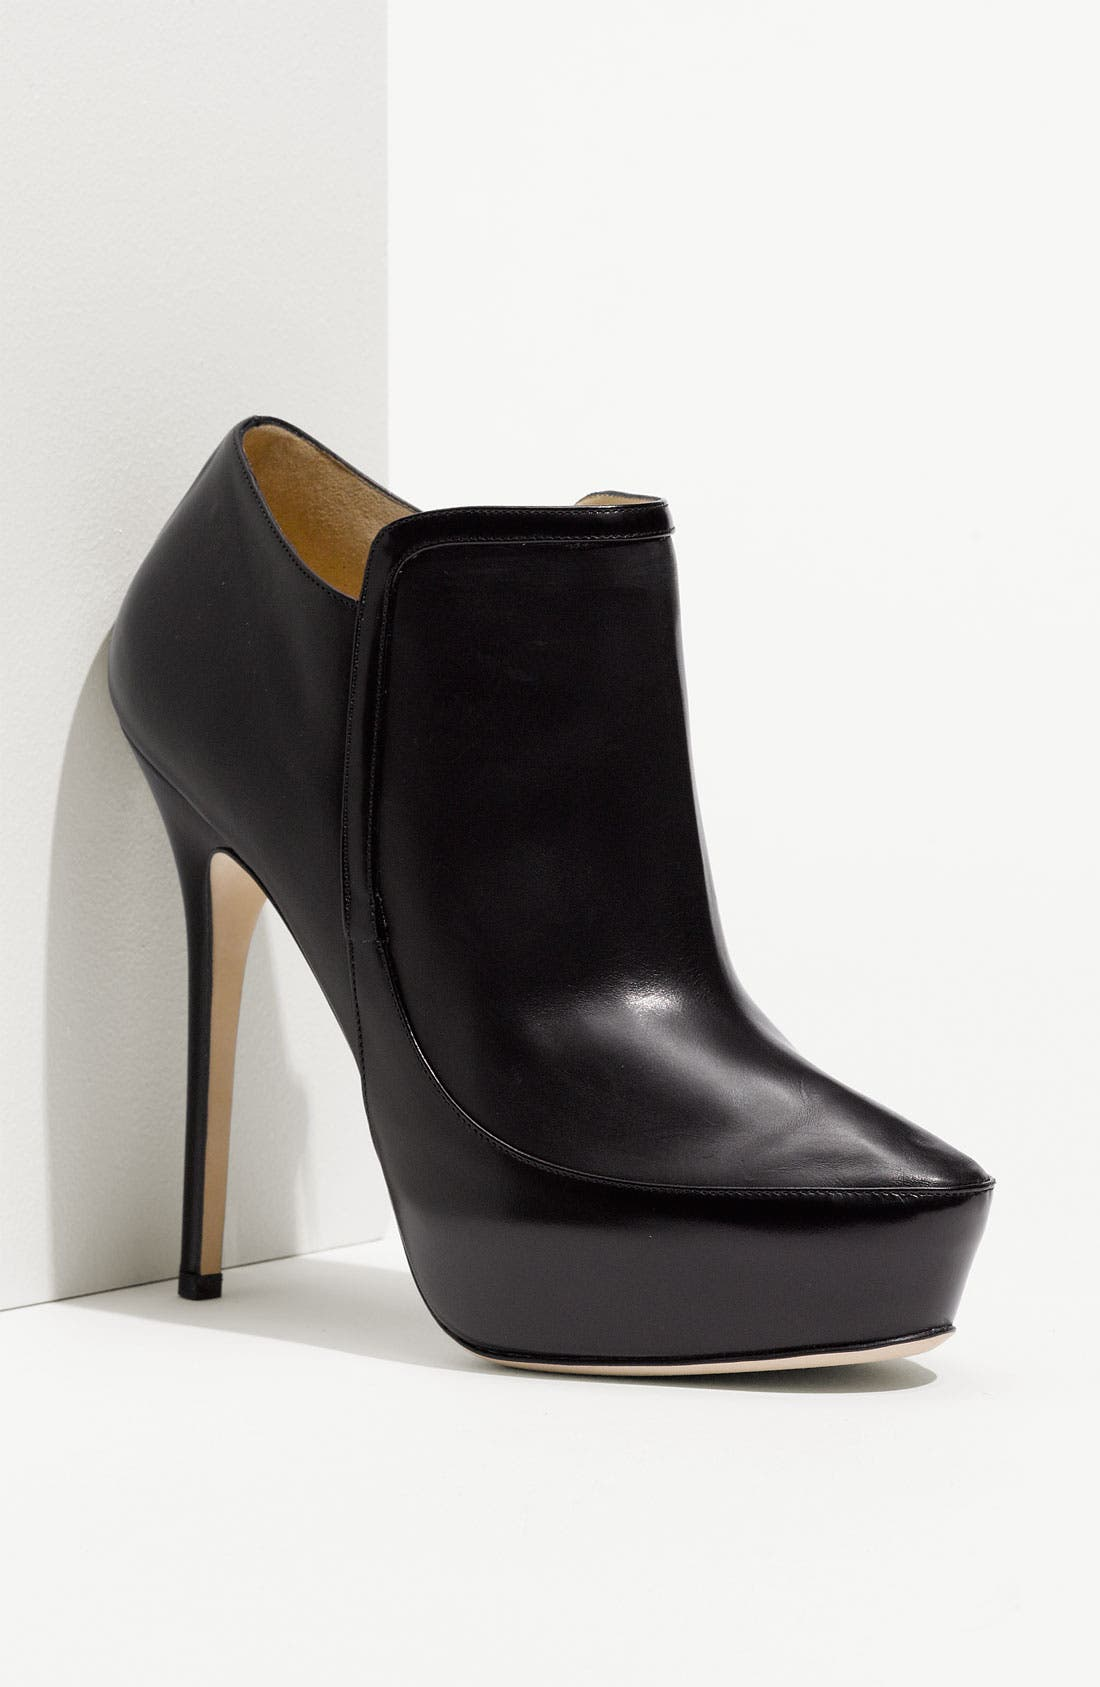 Alternate Image 1 Selected - Jimmy Choo 'Decoy' Platform Bootie